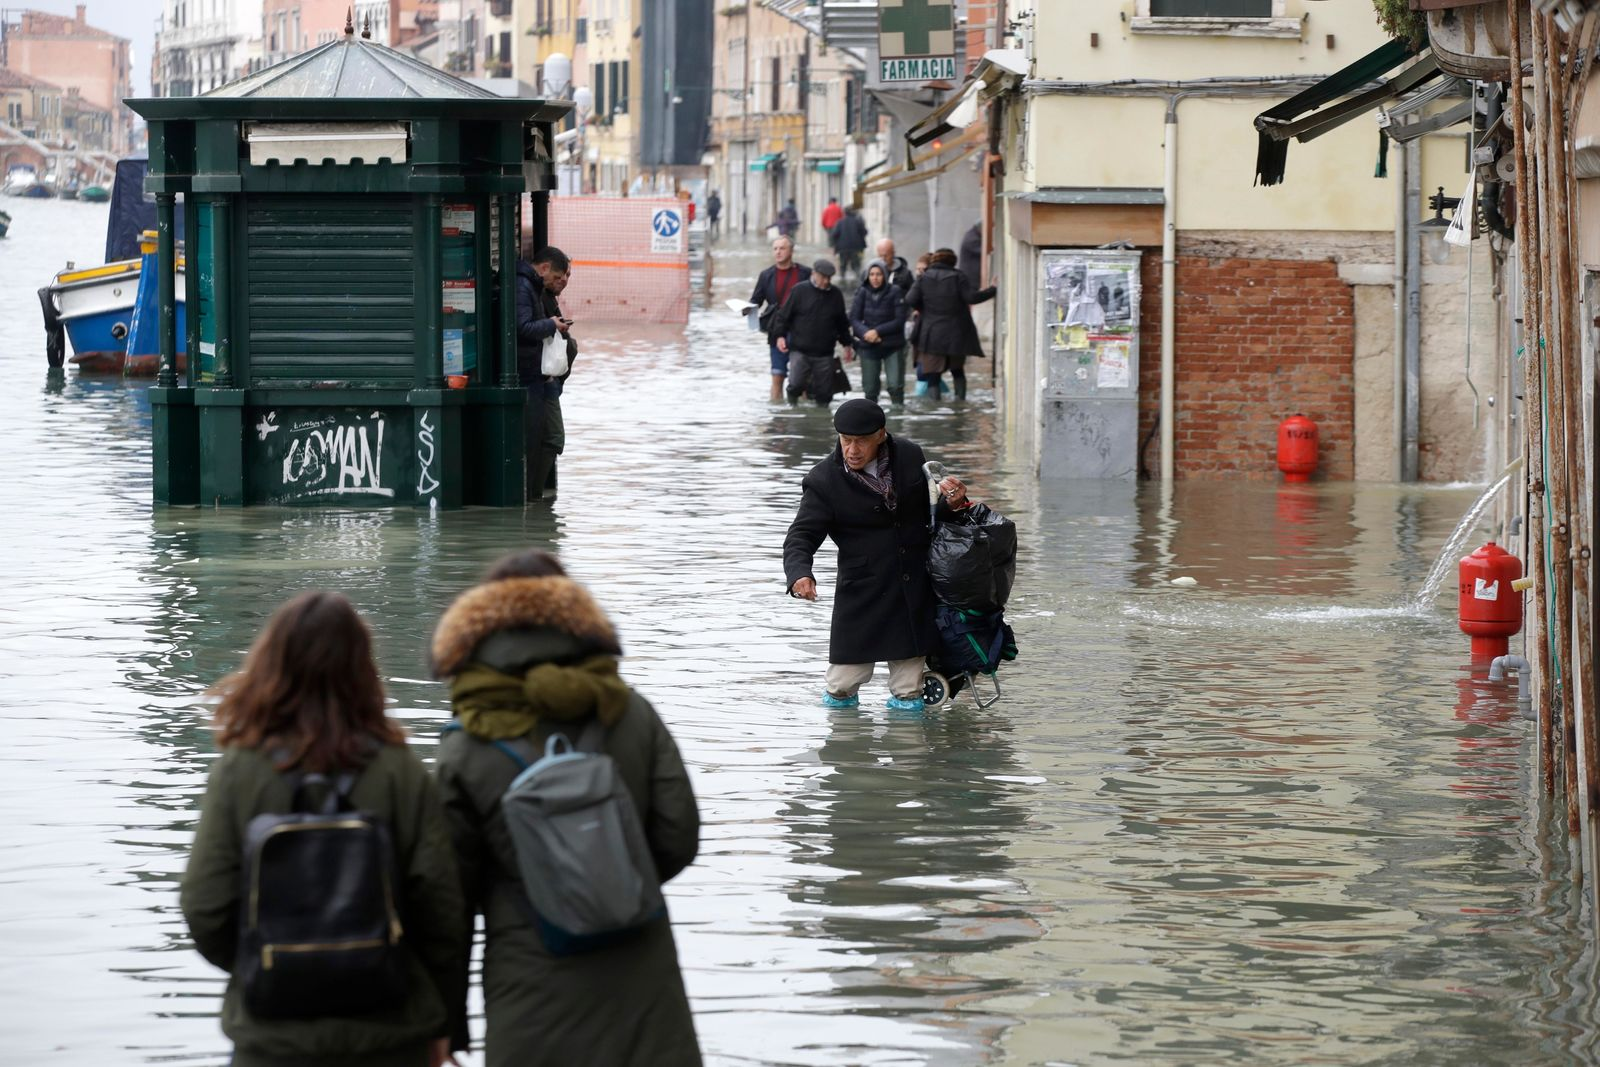 People wade through water during a high tide, in Venice, Wednesday, Nov. 13, 2019. The high-water mark hit 187 centimeters (74 inches) late Tuesday, Nov. 12, 2019, meaning more than 85% of the city was flooded. The highest level ever recorded was 194 centimeters (76 inches) during infamous flooding in 1966. (AP Photo/Luca Bruno)